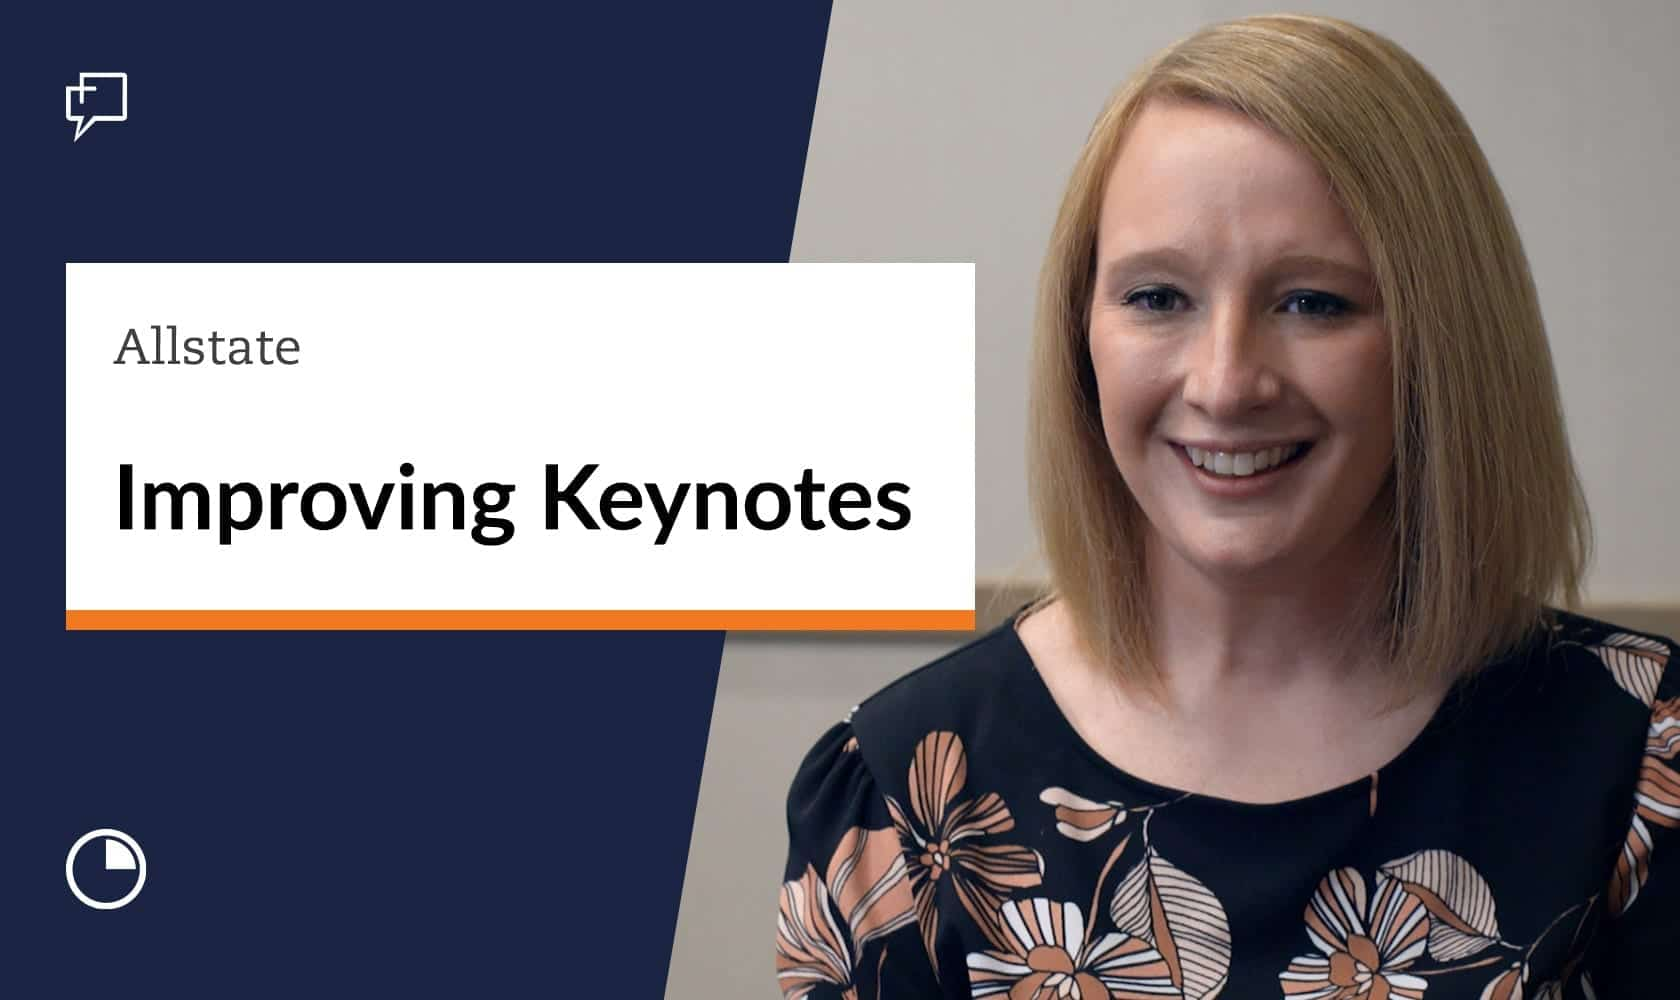 Improving Keynotes with Thoughtexchange